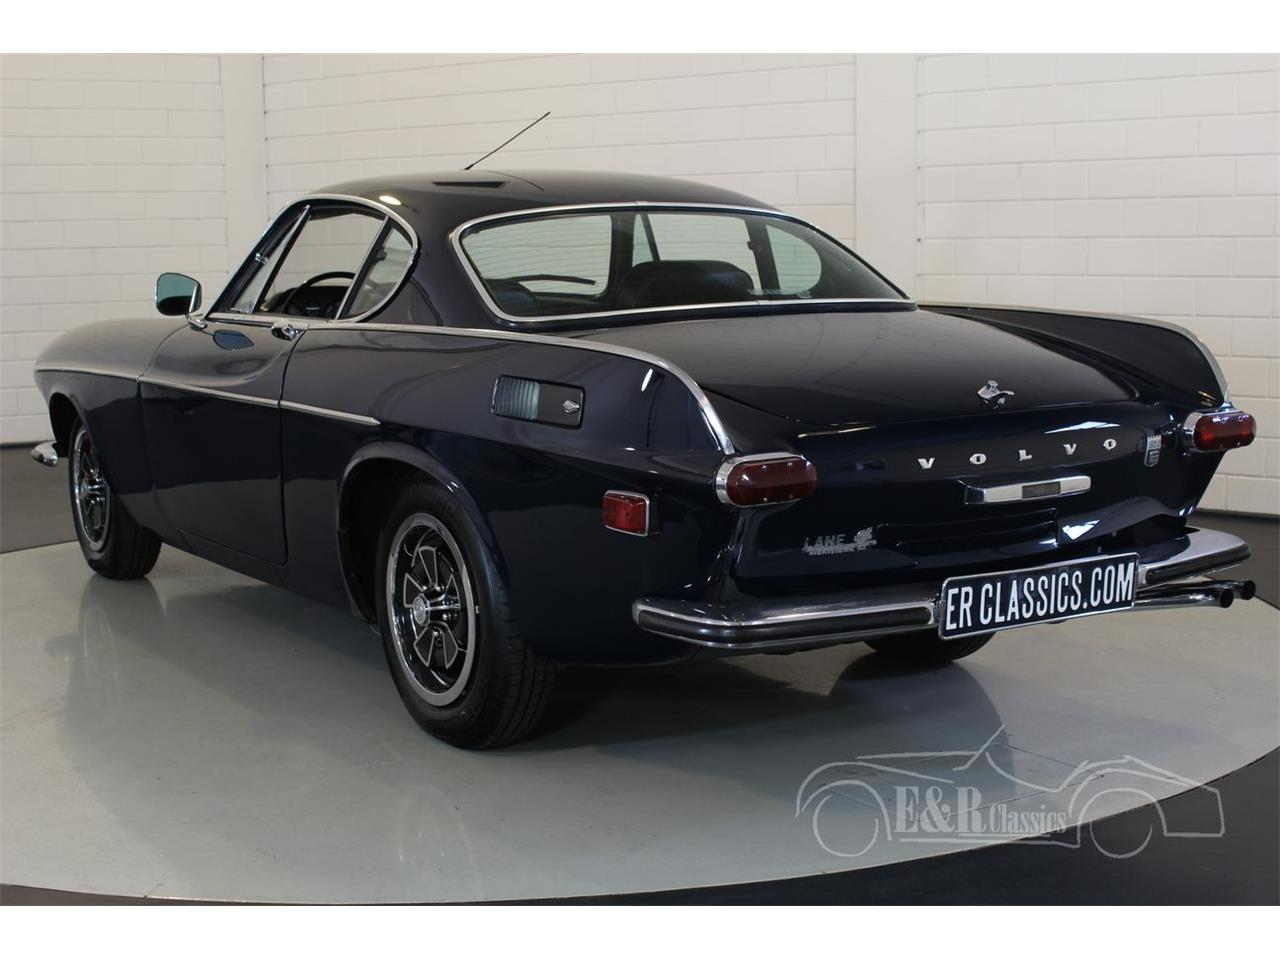 Large Picture of '71 P1800E located in Waalwijk noord brabant - $39,400.00 - Q95J